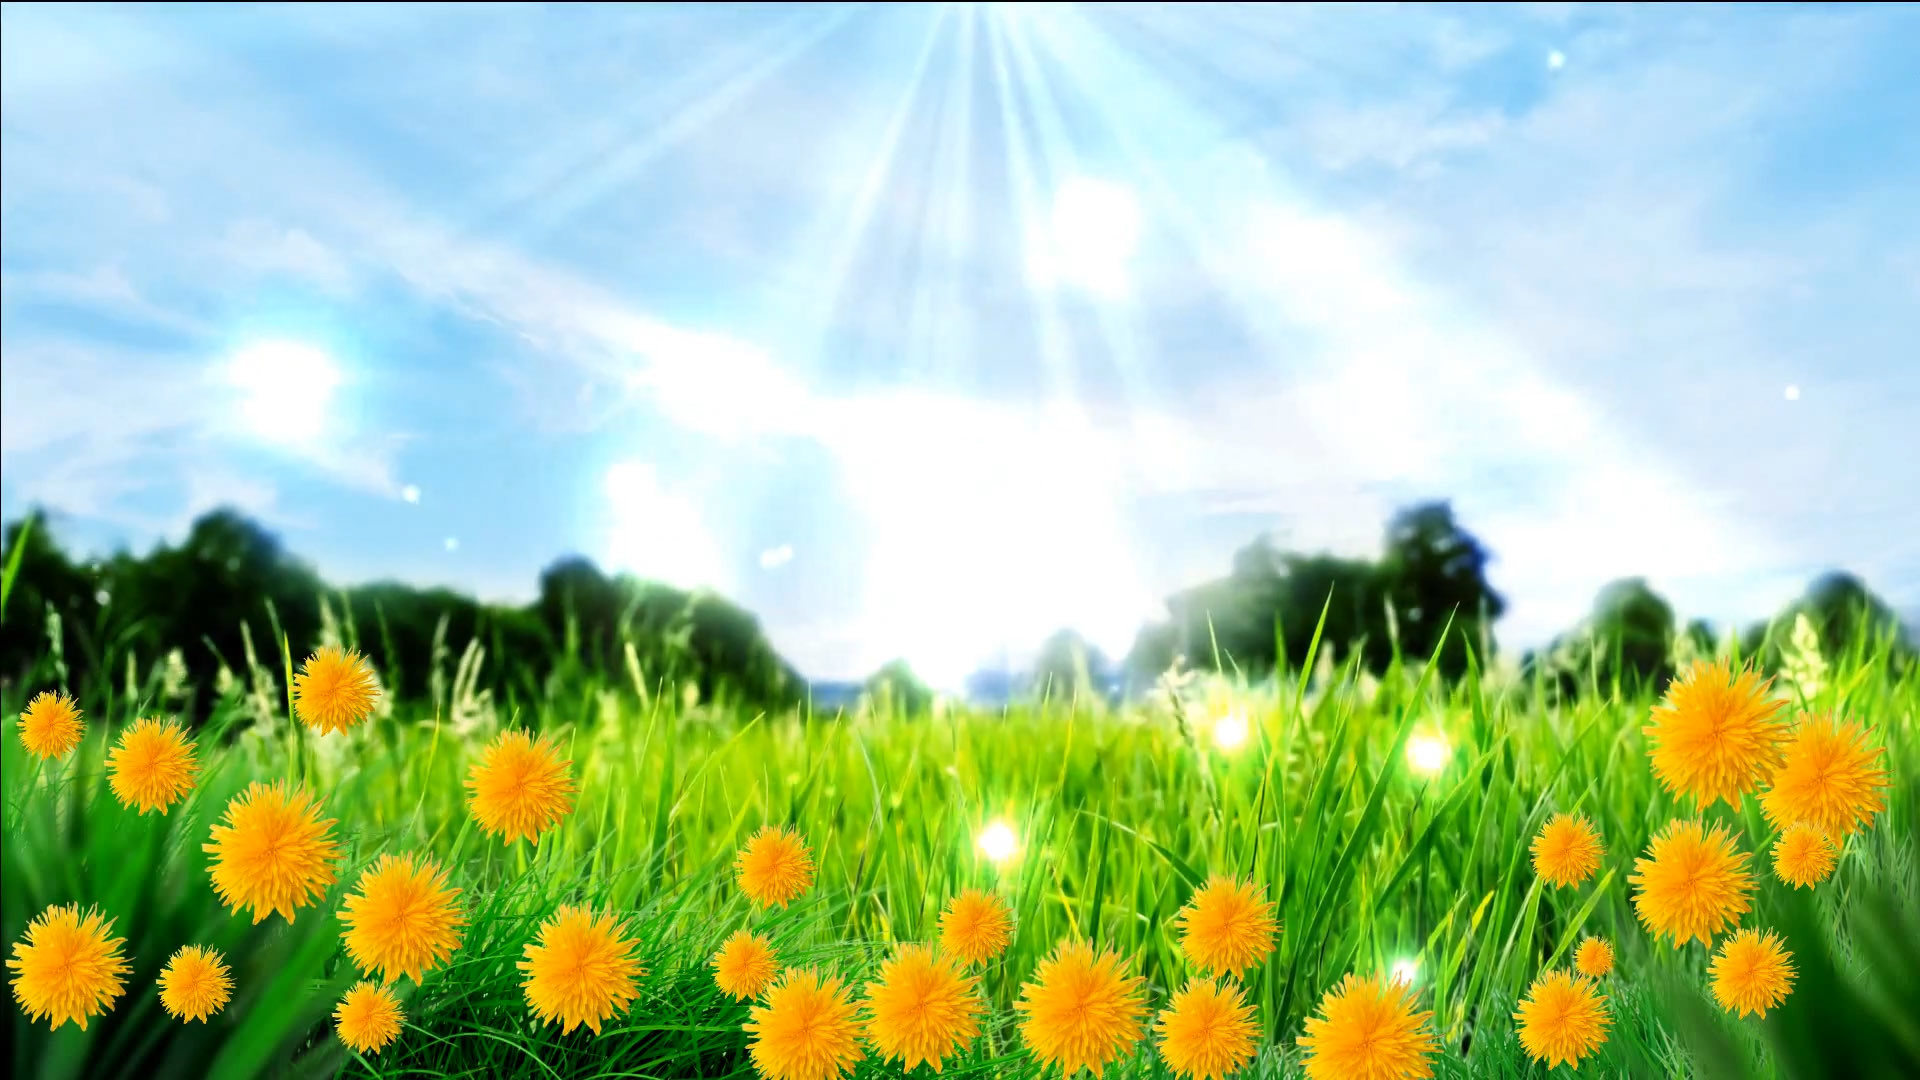 spring meadow wallpaper  63  images